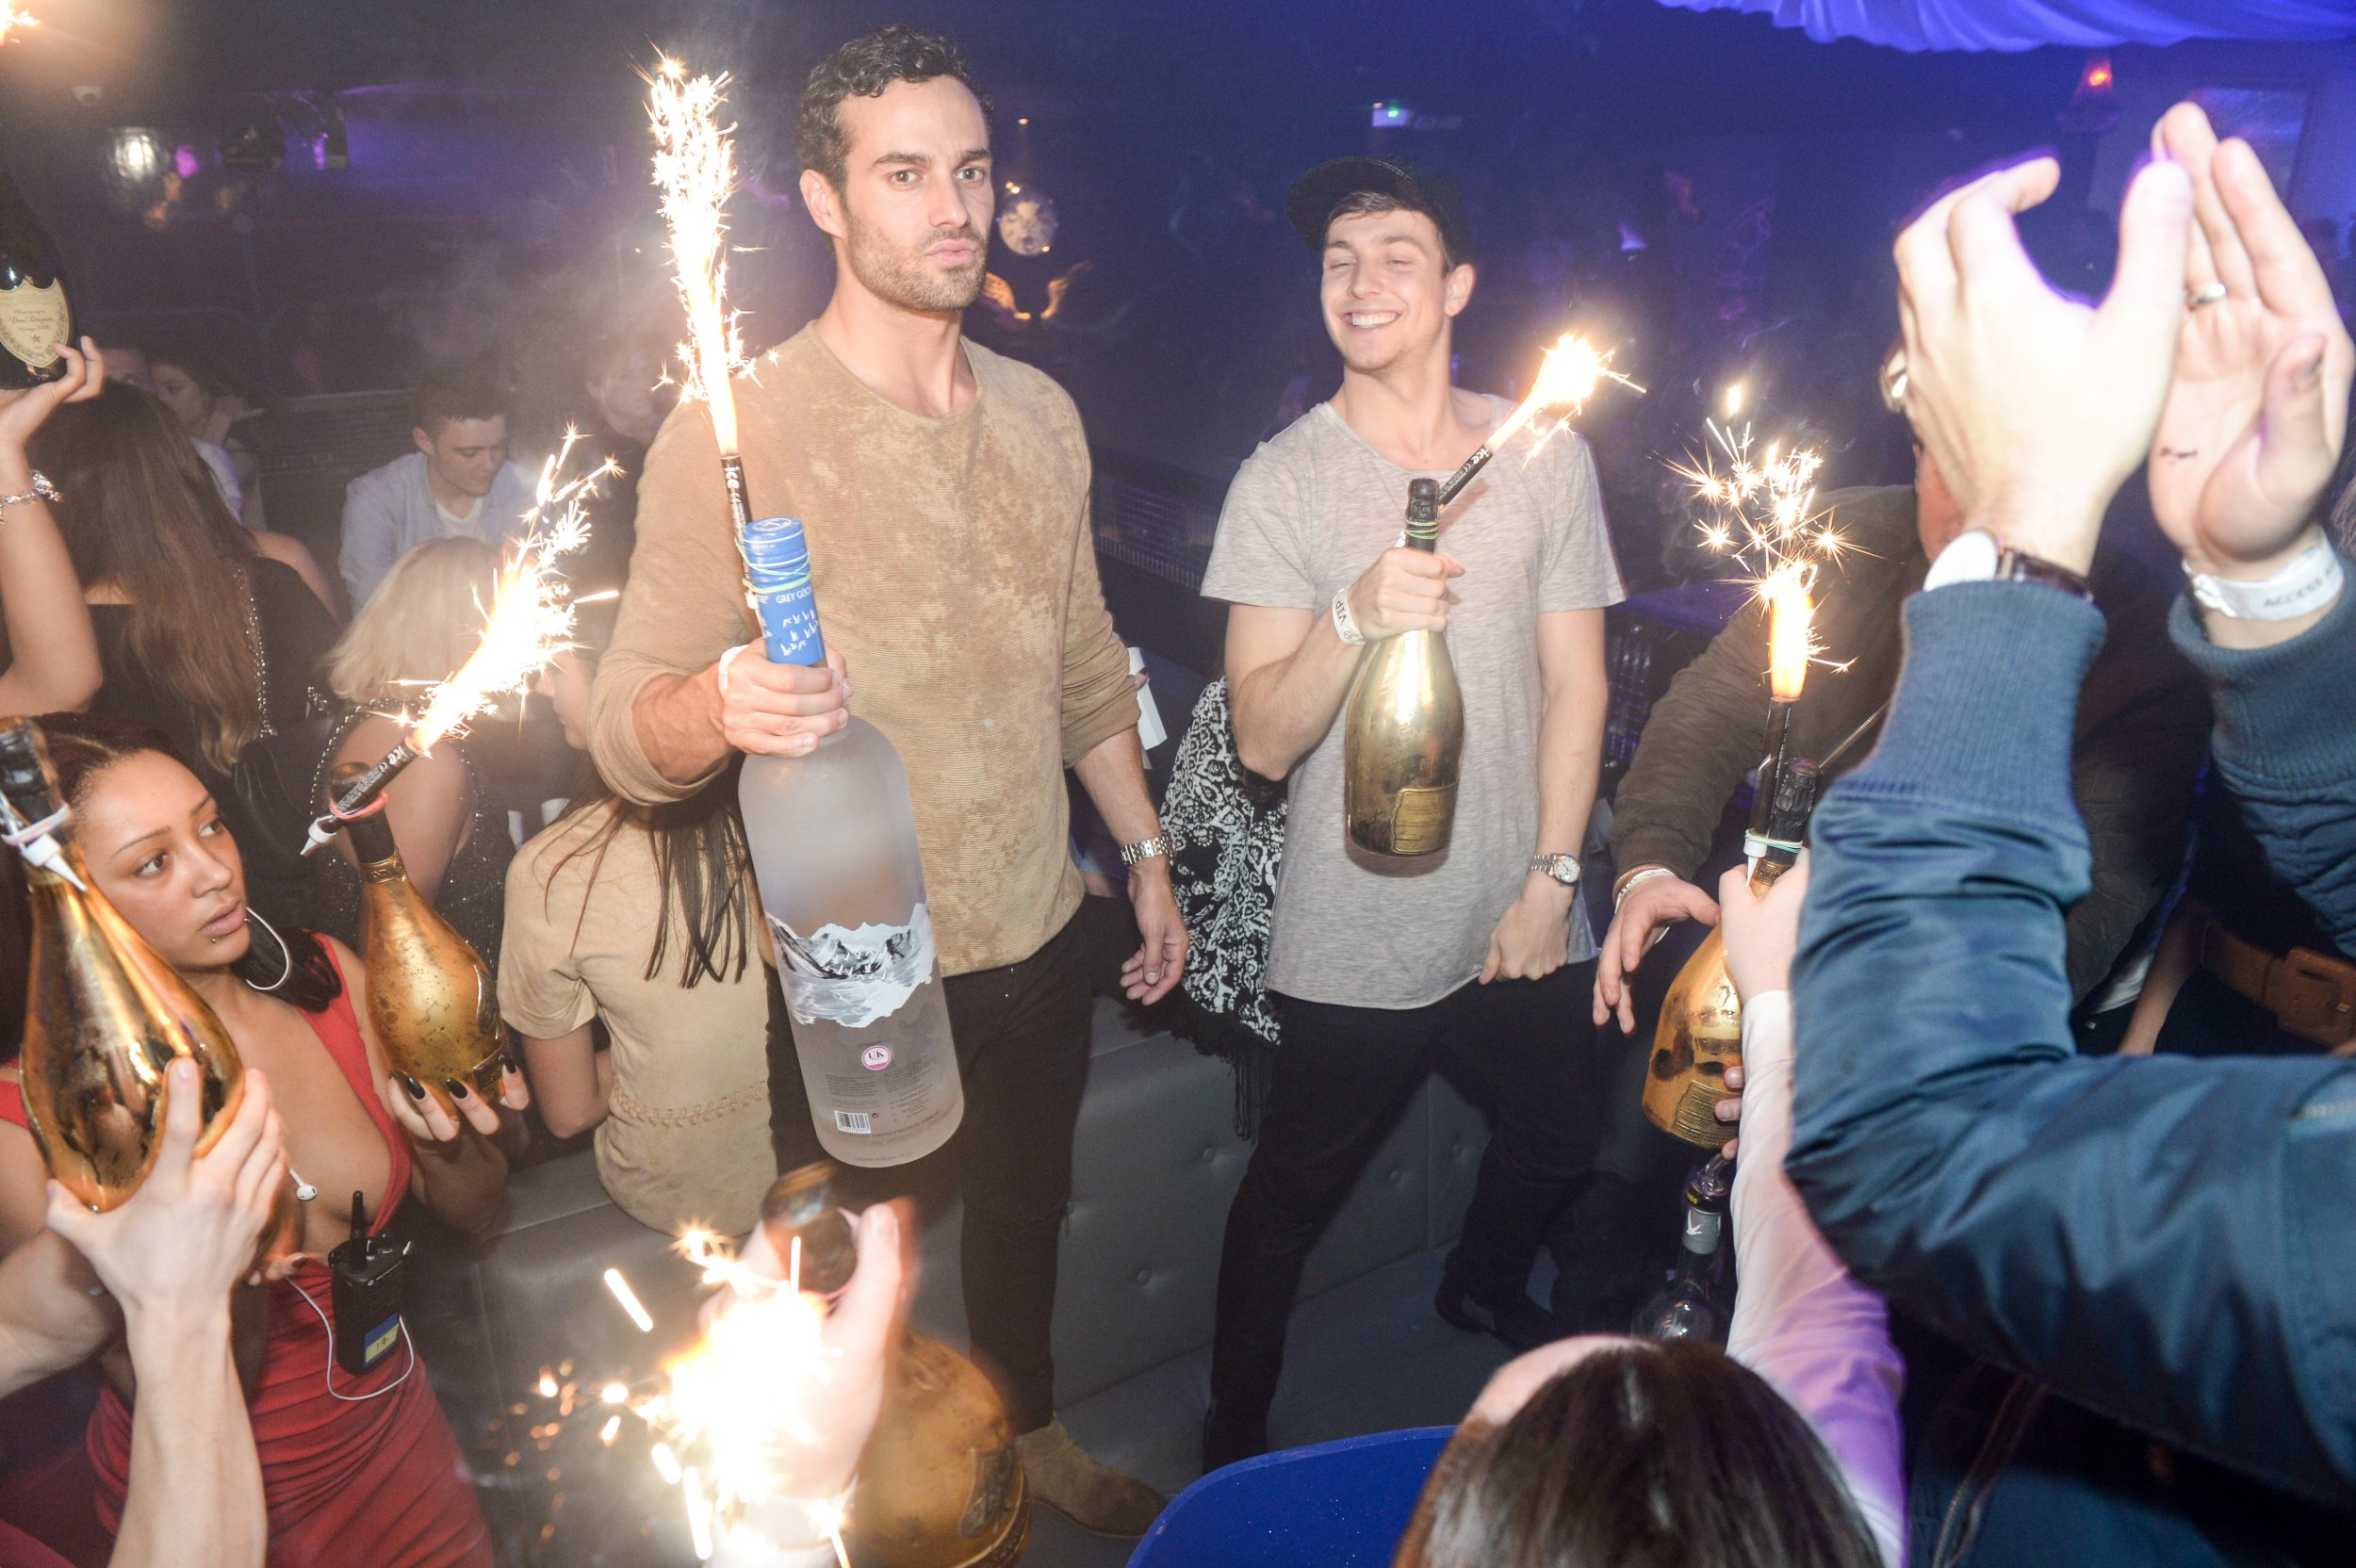 Large bottles of vodka and champagne being brought to the table at Hydeout Nightclub on its official launch night, Watford. See SWNS story SWCHELSEA; Made in Chelsea star Sam Thompson found himself hit by the bar on a wild night at the launch of a new superclub - with a £24,000 drinks tab. The reality TV hunk and a posse of co-stars downed Dom Perignon, Patron tequila, magnums of Grey Goose vodka and trendy champagne Ace of Spades. But Sam suddenly found his mates had deserted him when he was presented with the #24,320 bill at the Hydeout in Watford in the early hours of yesterday (Sat) morning. He posted a pic of the mega bill to his 186,000 Instagram followers and 100,000 Twitter followers before quickly deleting it. But his party - including Georgia Toffolo, Chase Hunter, Josh 'JP' Patterson and James Dunmore from Made in Chelsea and Ex on the Beach babe Jess Impiazzi - certainly got their money's worth for their big night out.